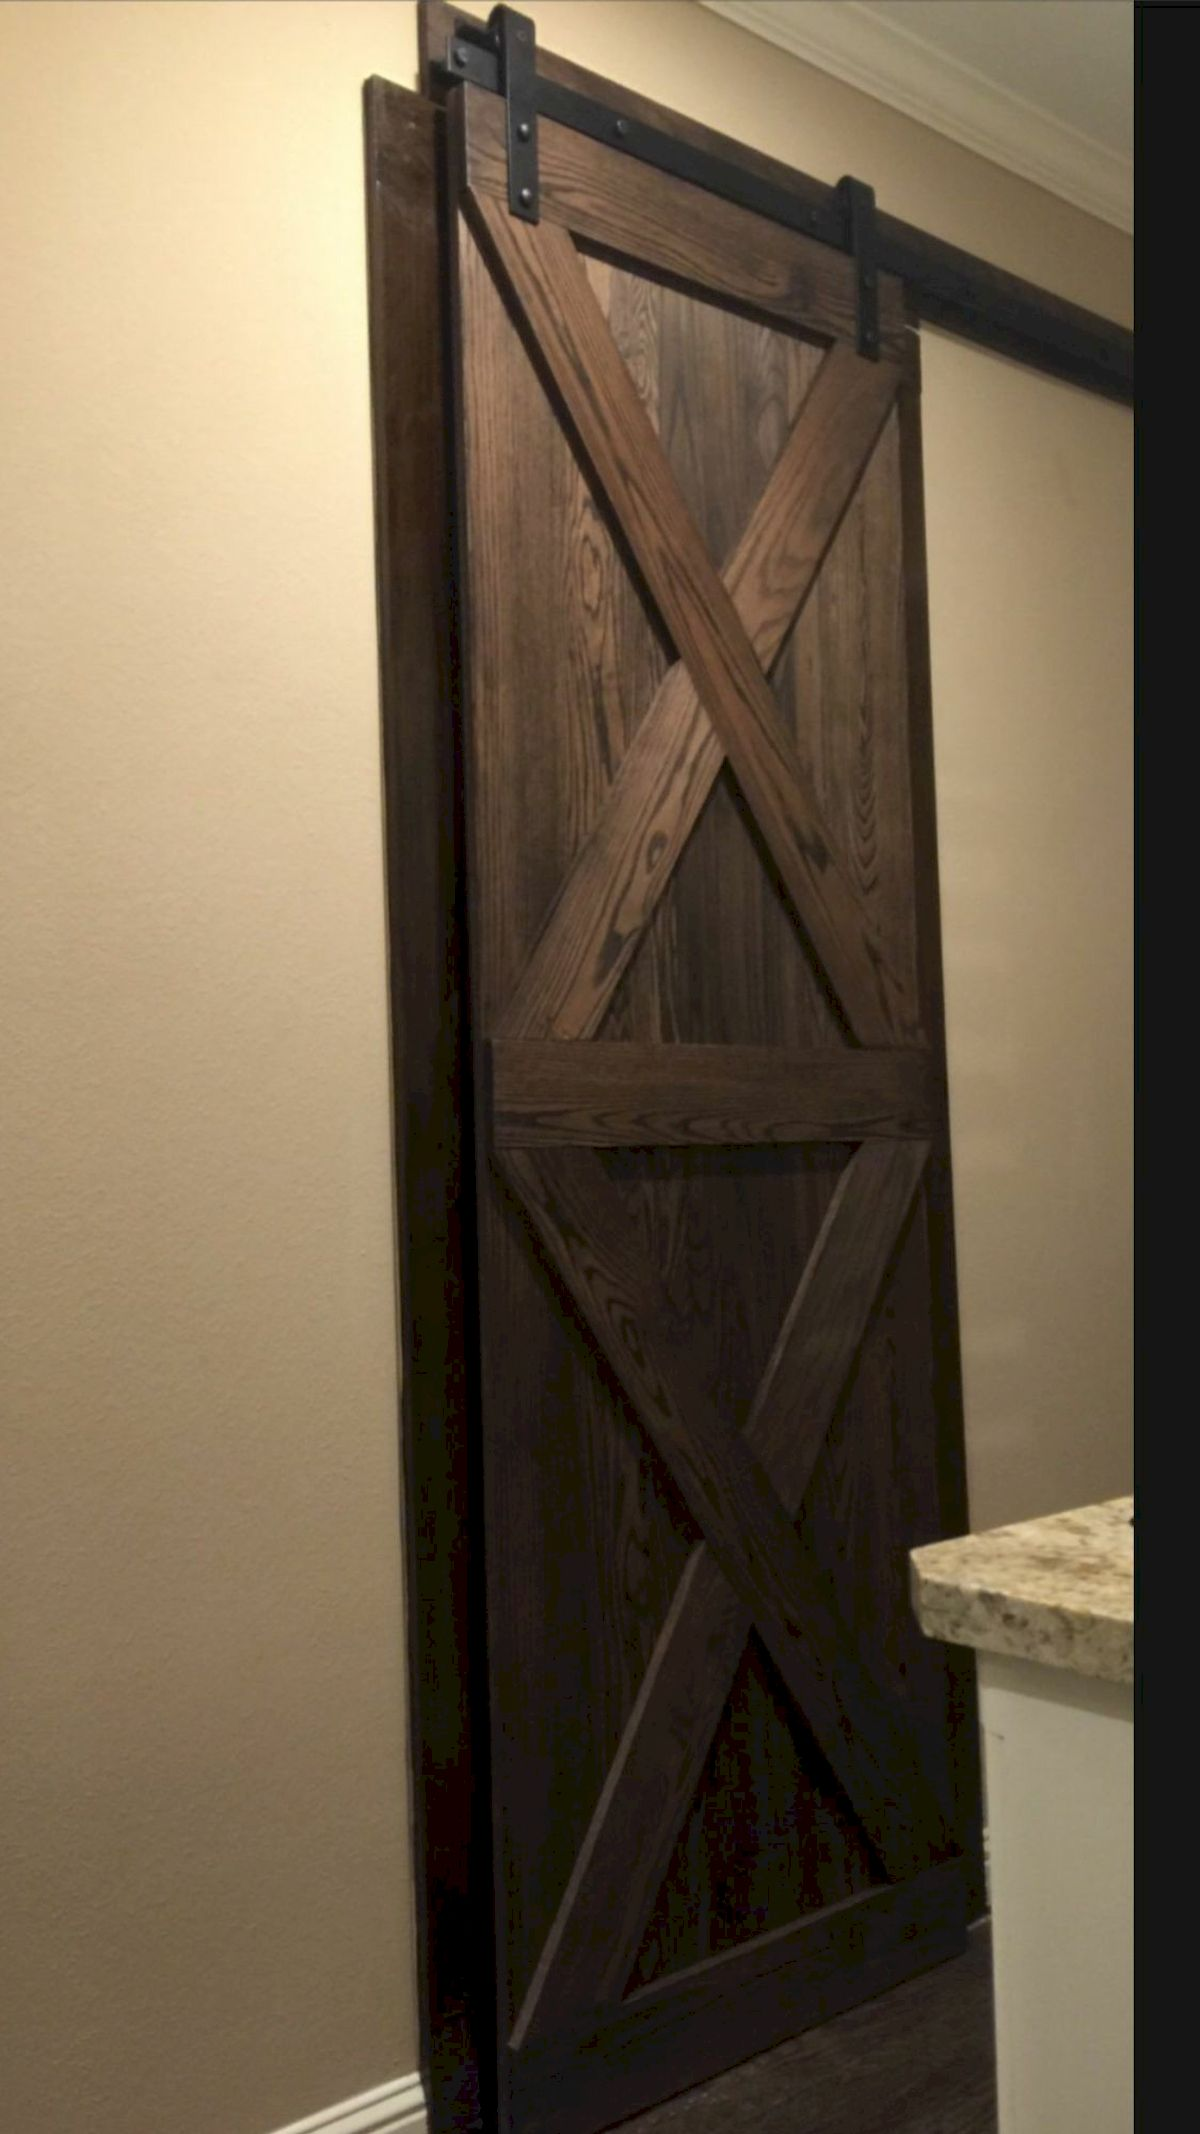 70 Rustic Home Decor Ideas for Doors and Windows (25)